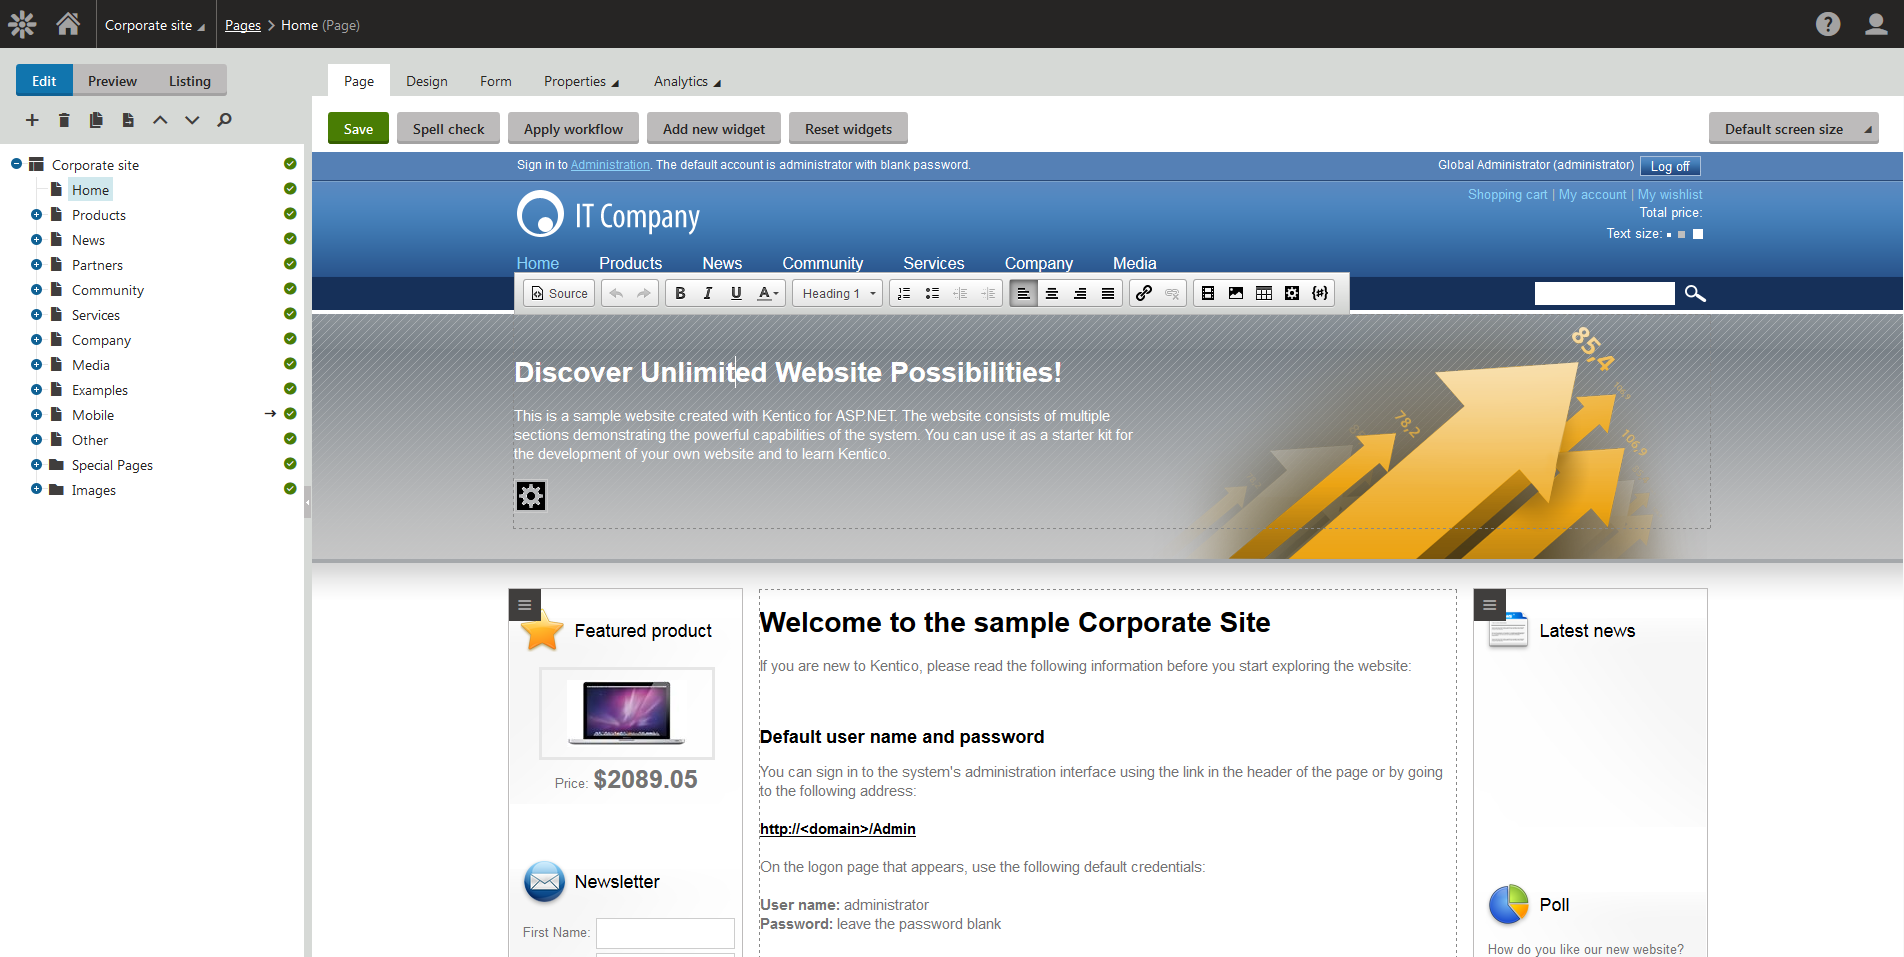 Easily edit and preview the website's design, text, photos etc. in Xperience